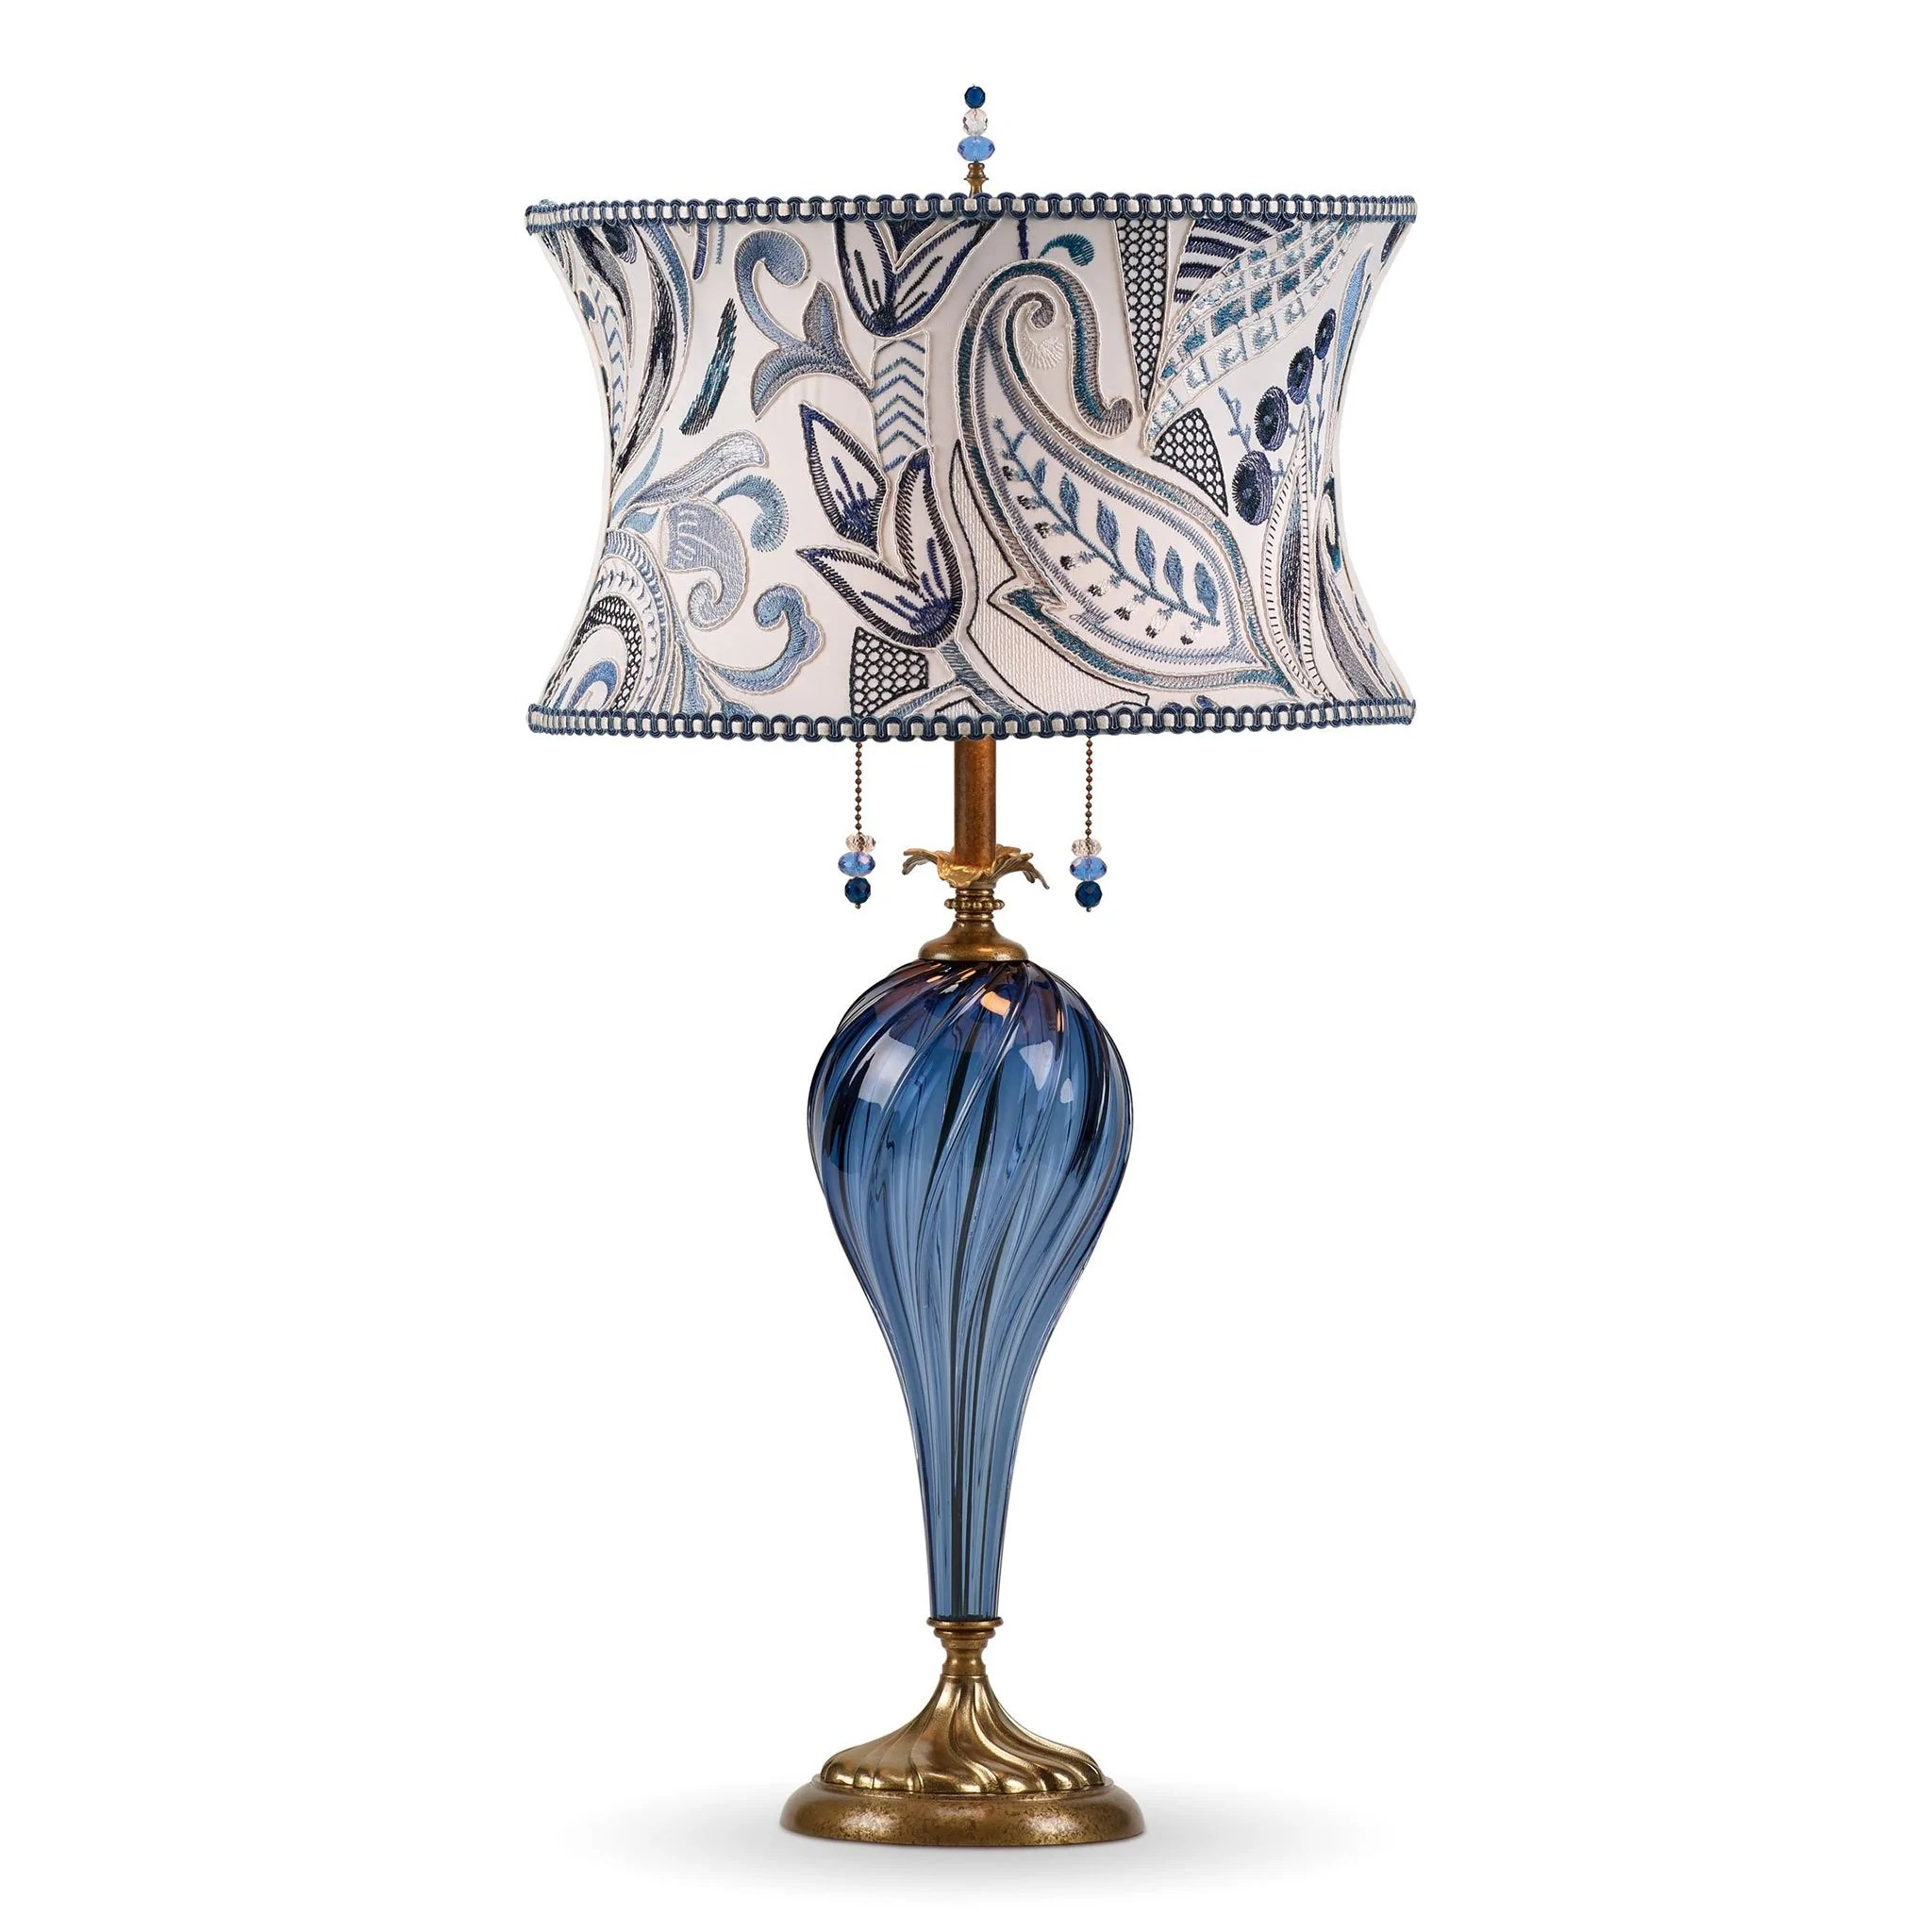 Kinzig Design Madison Table Lamp Colors Blue Blown Glass Base With Blue And White Embroidered Shade Sweetheart Gallery Contemporary Craft Gallery Fine American Craft Art Design Handmade Home Personal Accessories